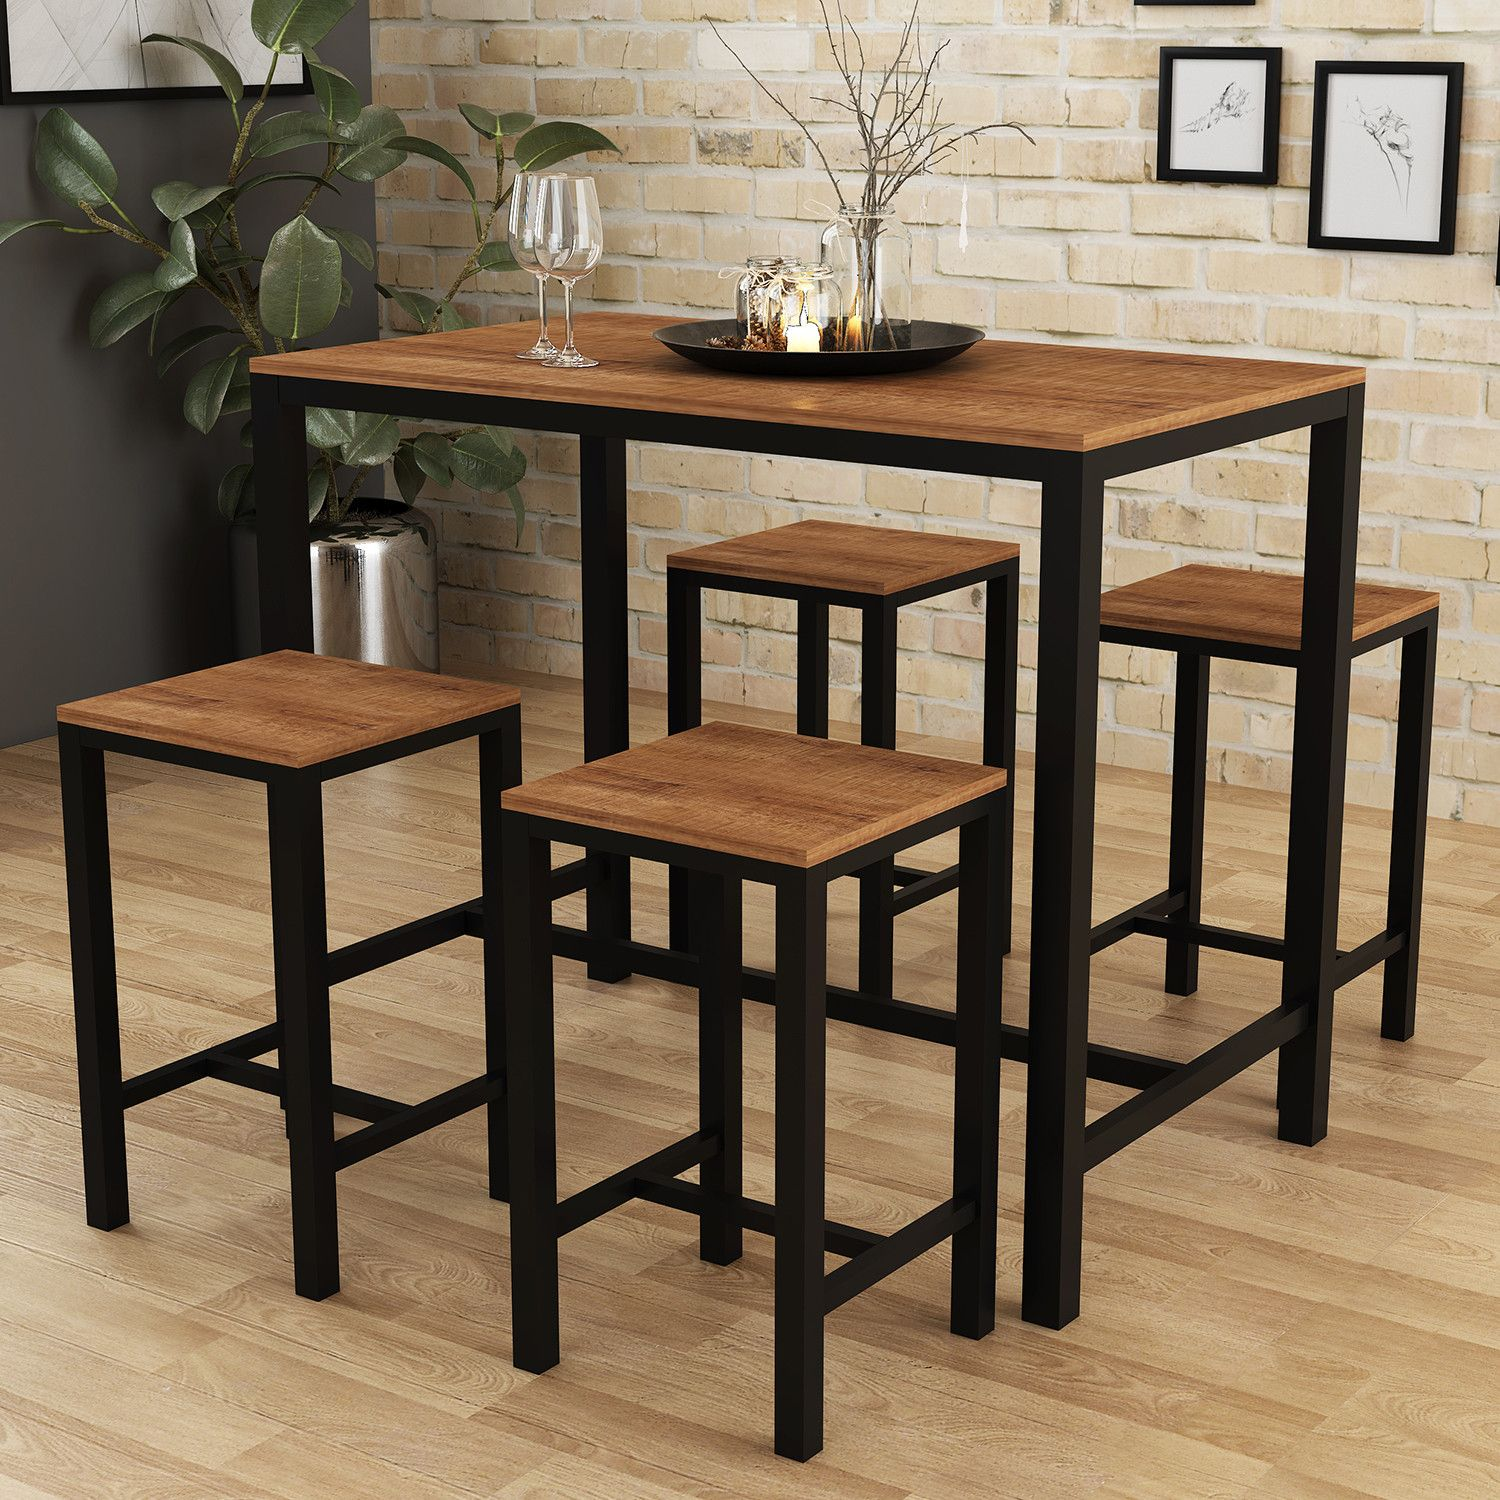 Camden Bar Table And Stool Set In 2020 Bar Table Bar Table And